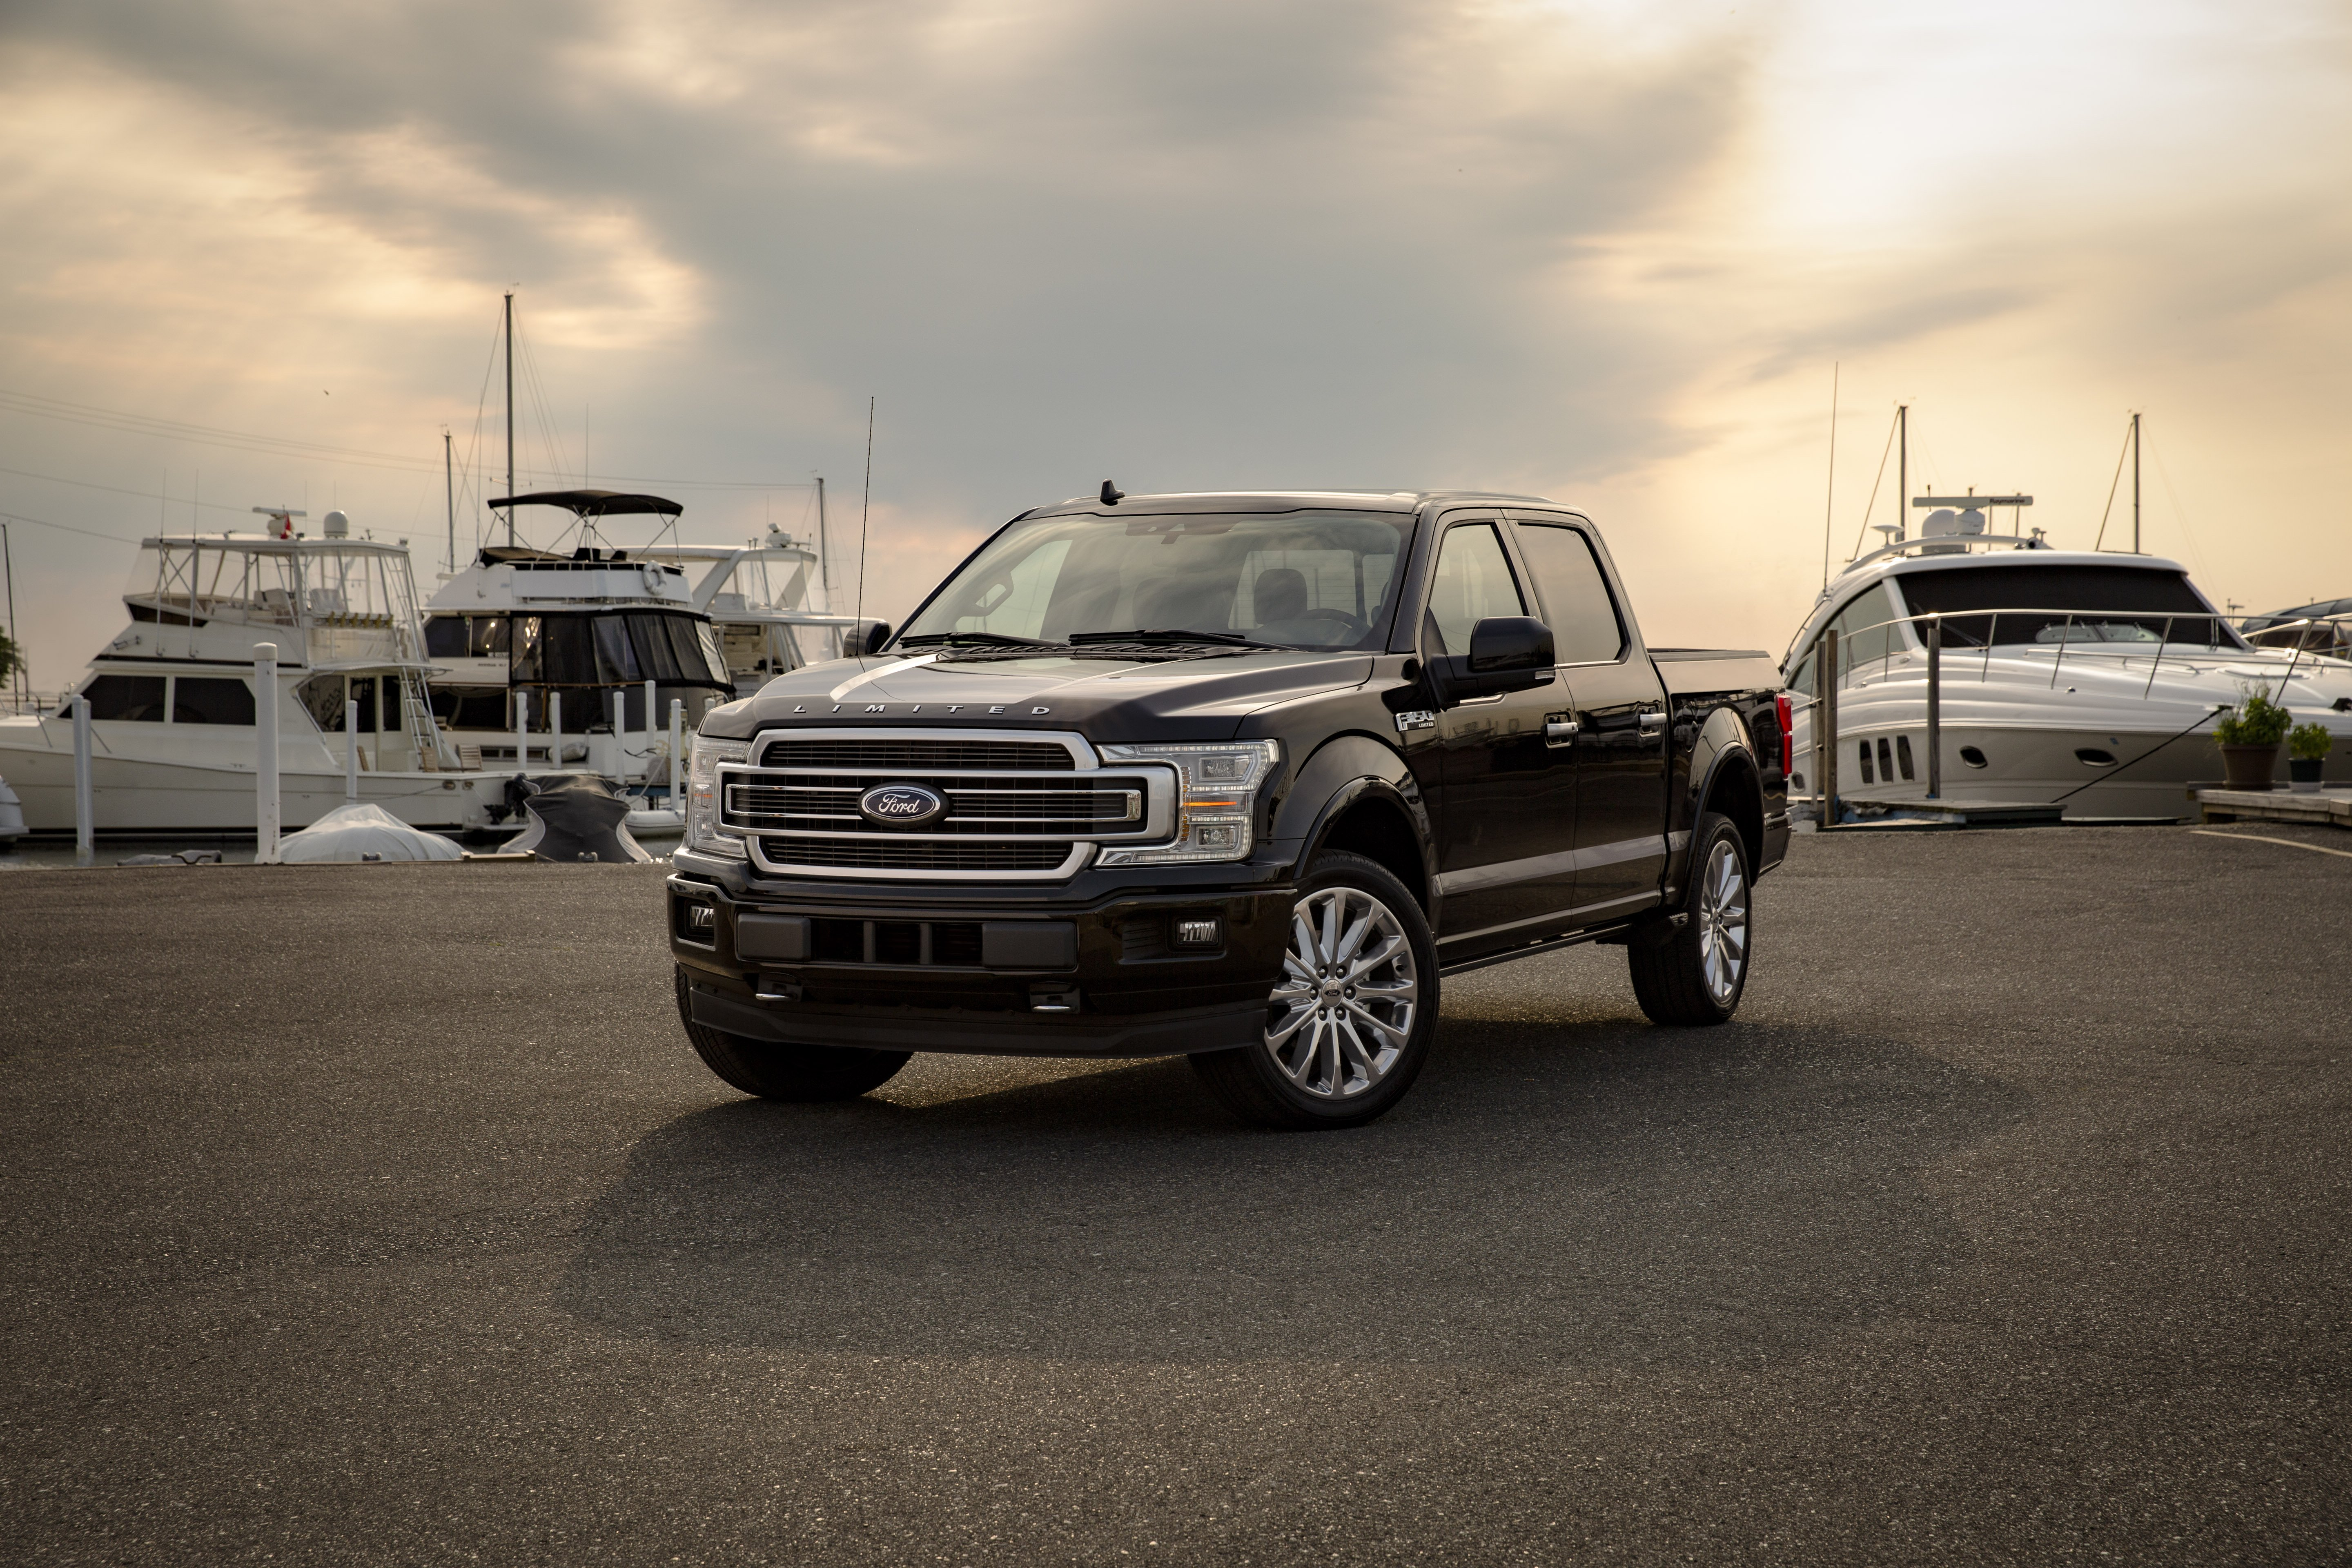 Copyright Infringement Lawsuit Has Ford Humming a Sad Tune